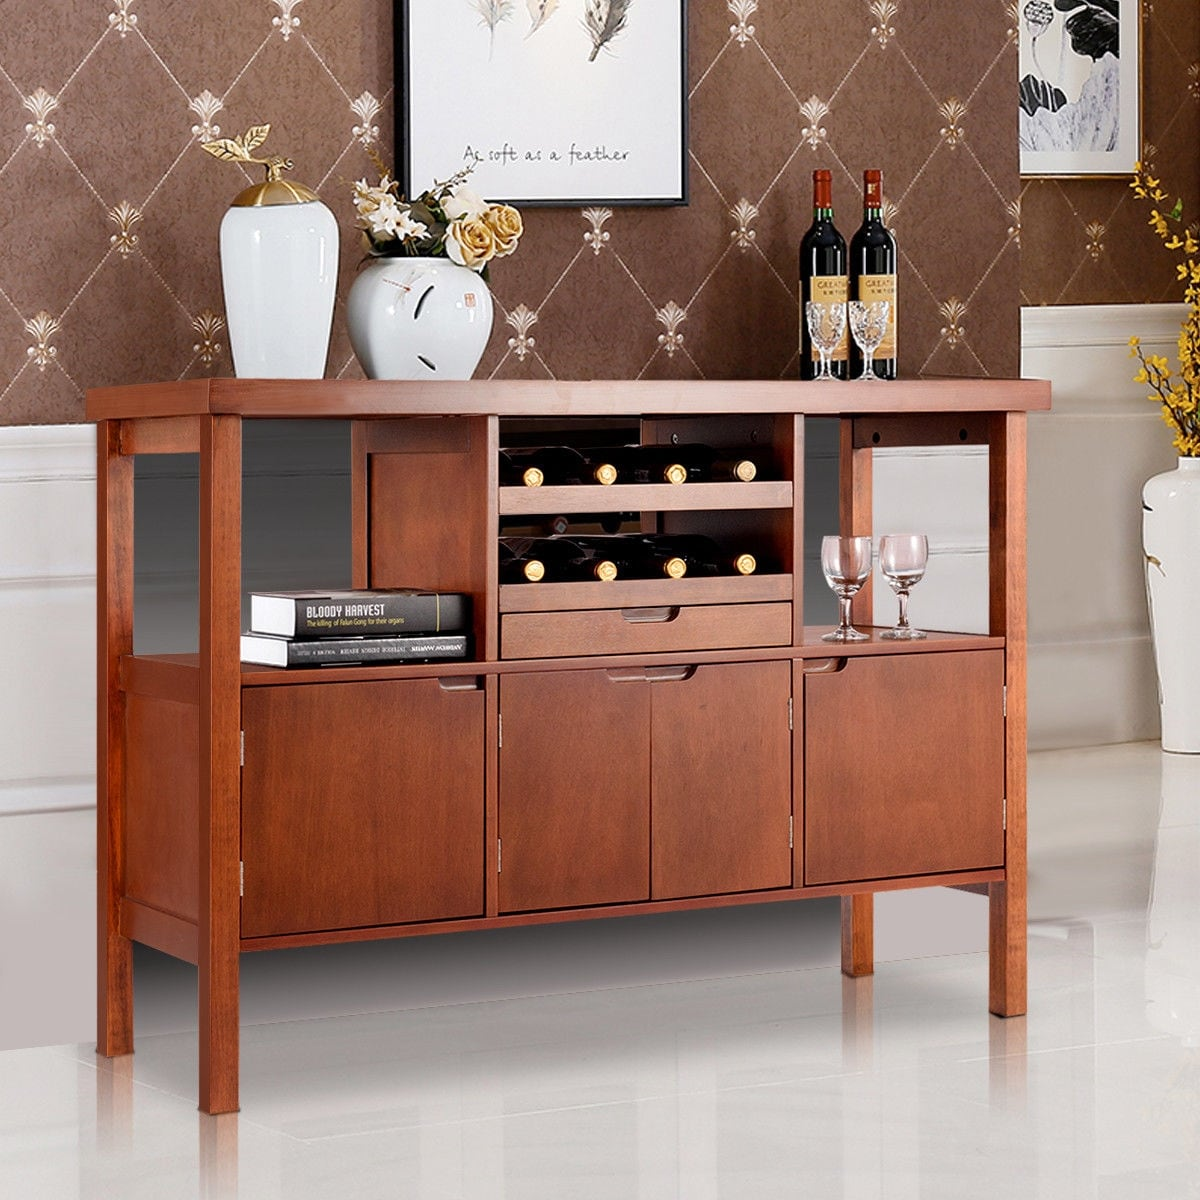 Buffet Sideboard With Wine Rack Costway Brown Wooden Buffet Server Table Storage Cabinet Sideboard Dining W Wine Rack